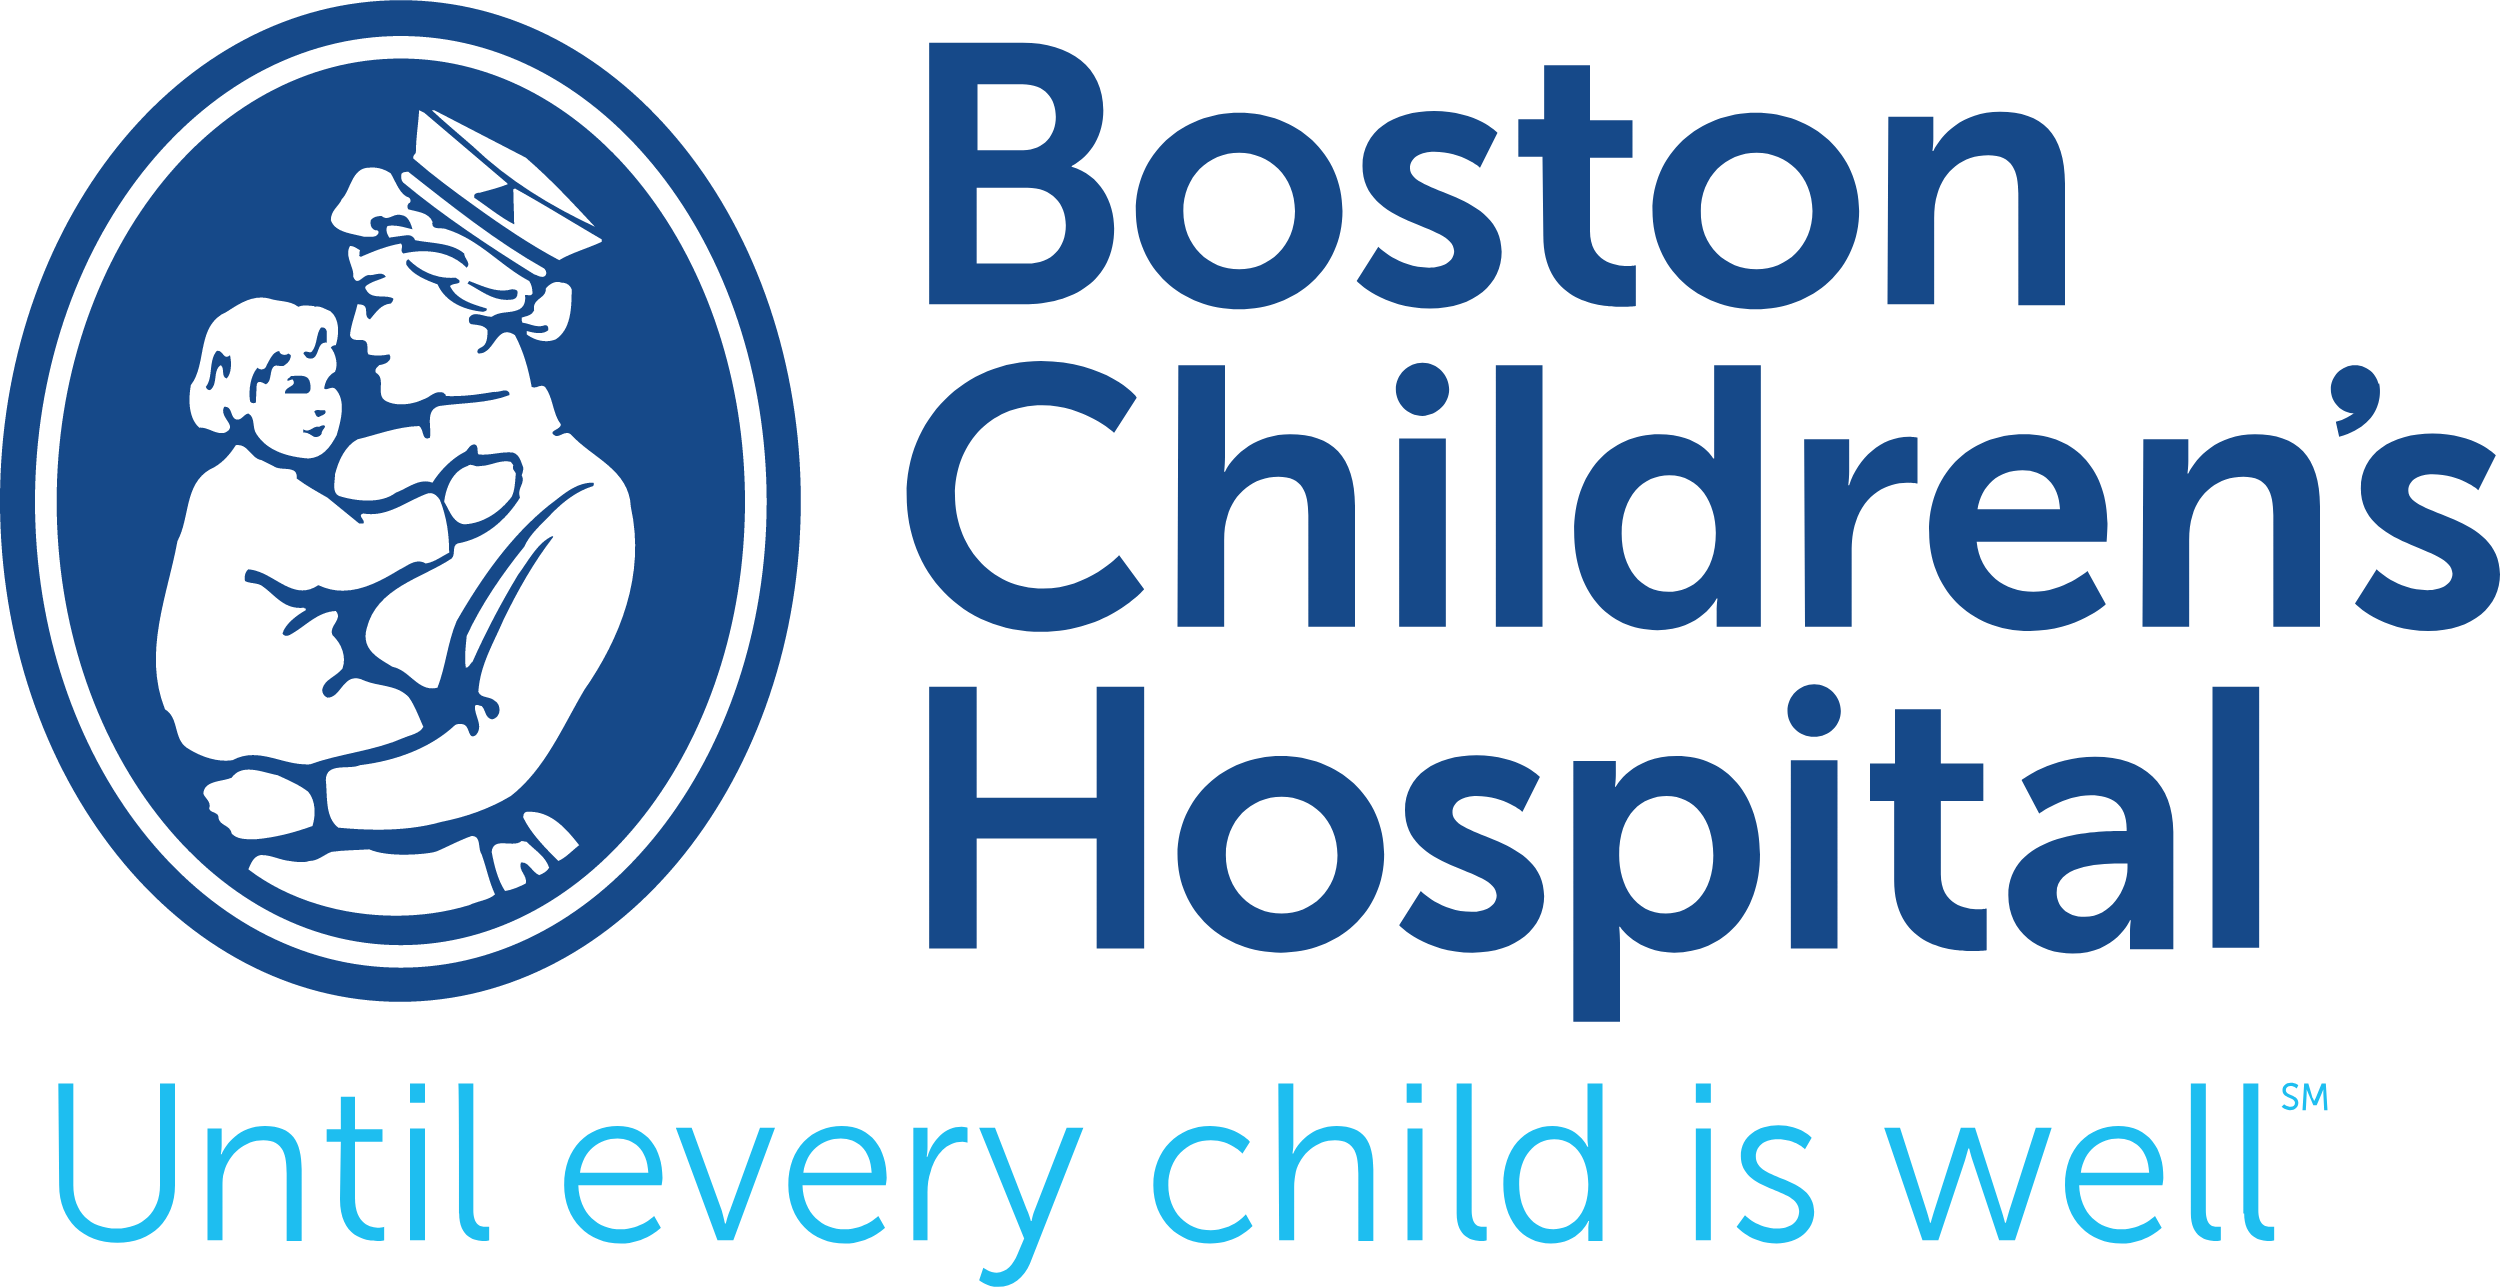 Boston_Childrens_Hospital_logo